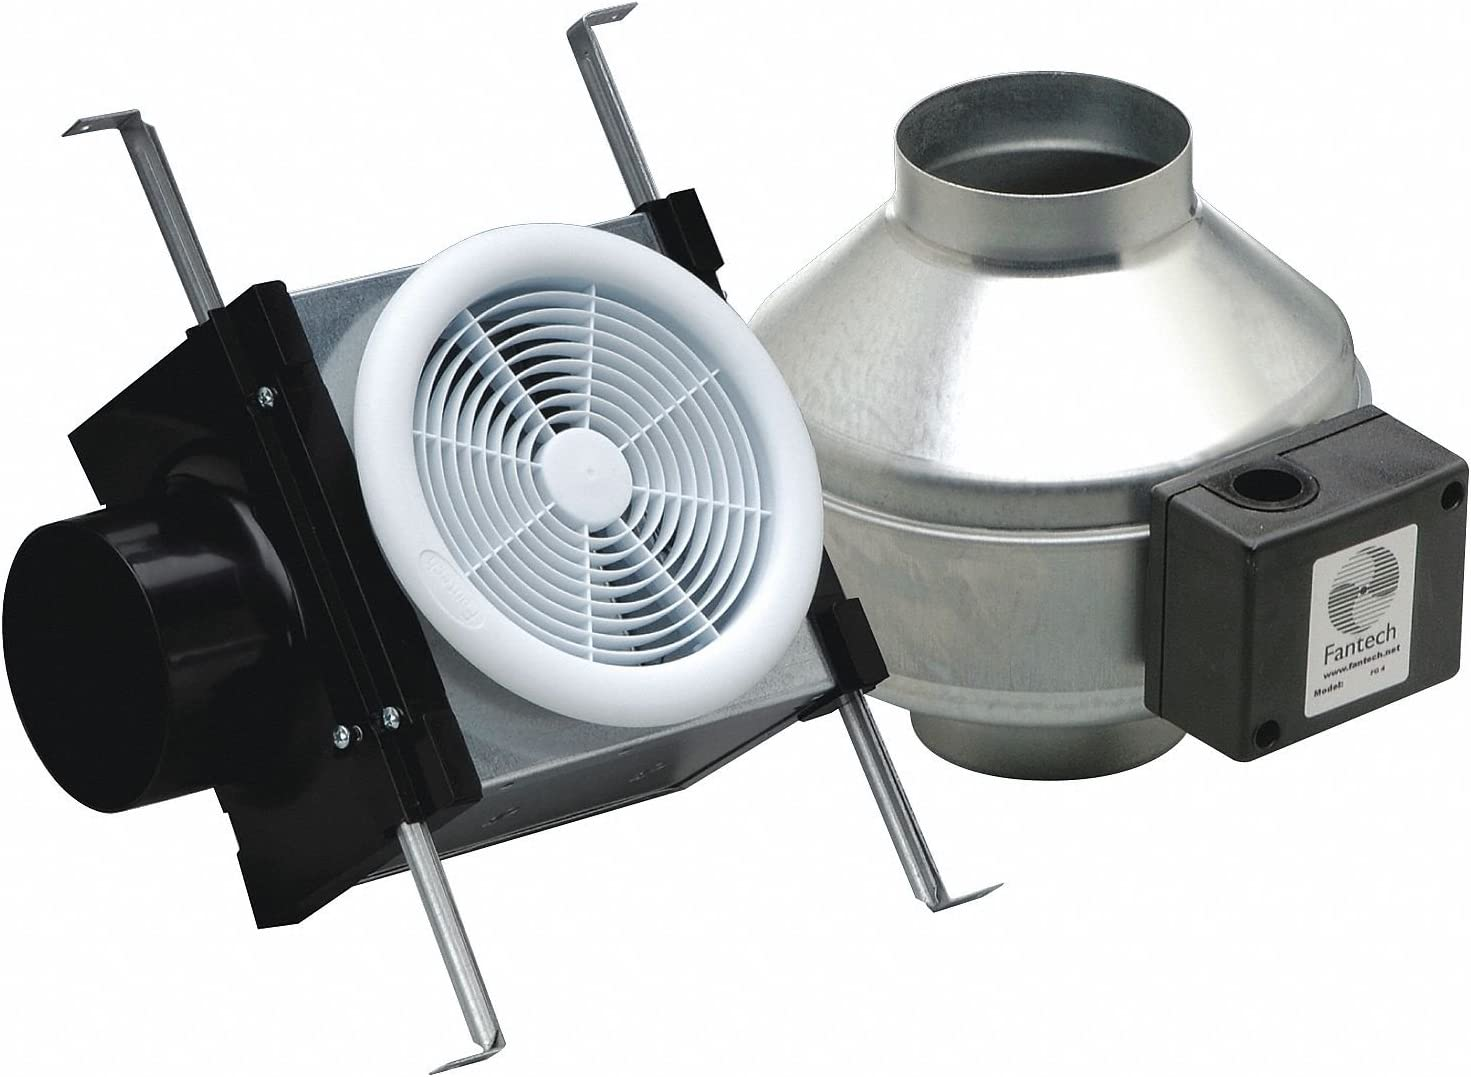 "Fantech PB190 Inline Exhaust Fan, 190 CFM, Bathroom Kit with FR140 Fan - for 6"" Duct"